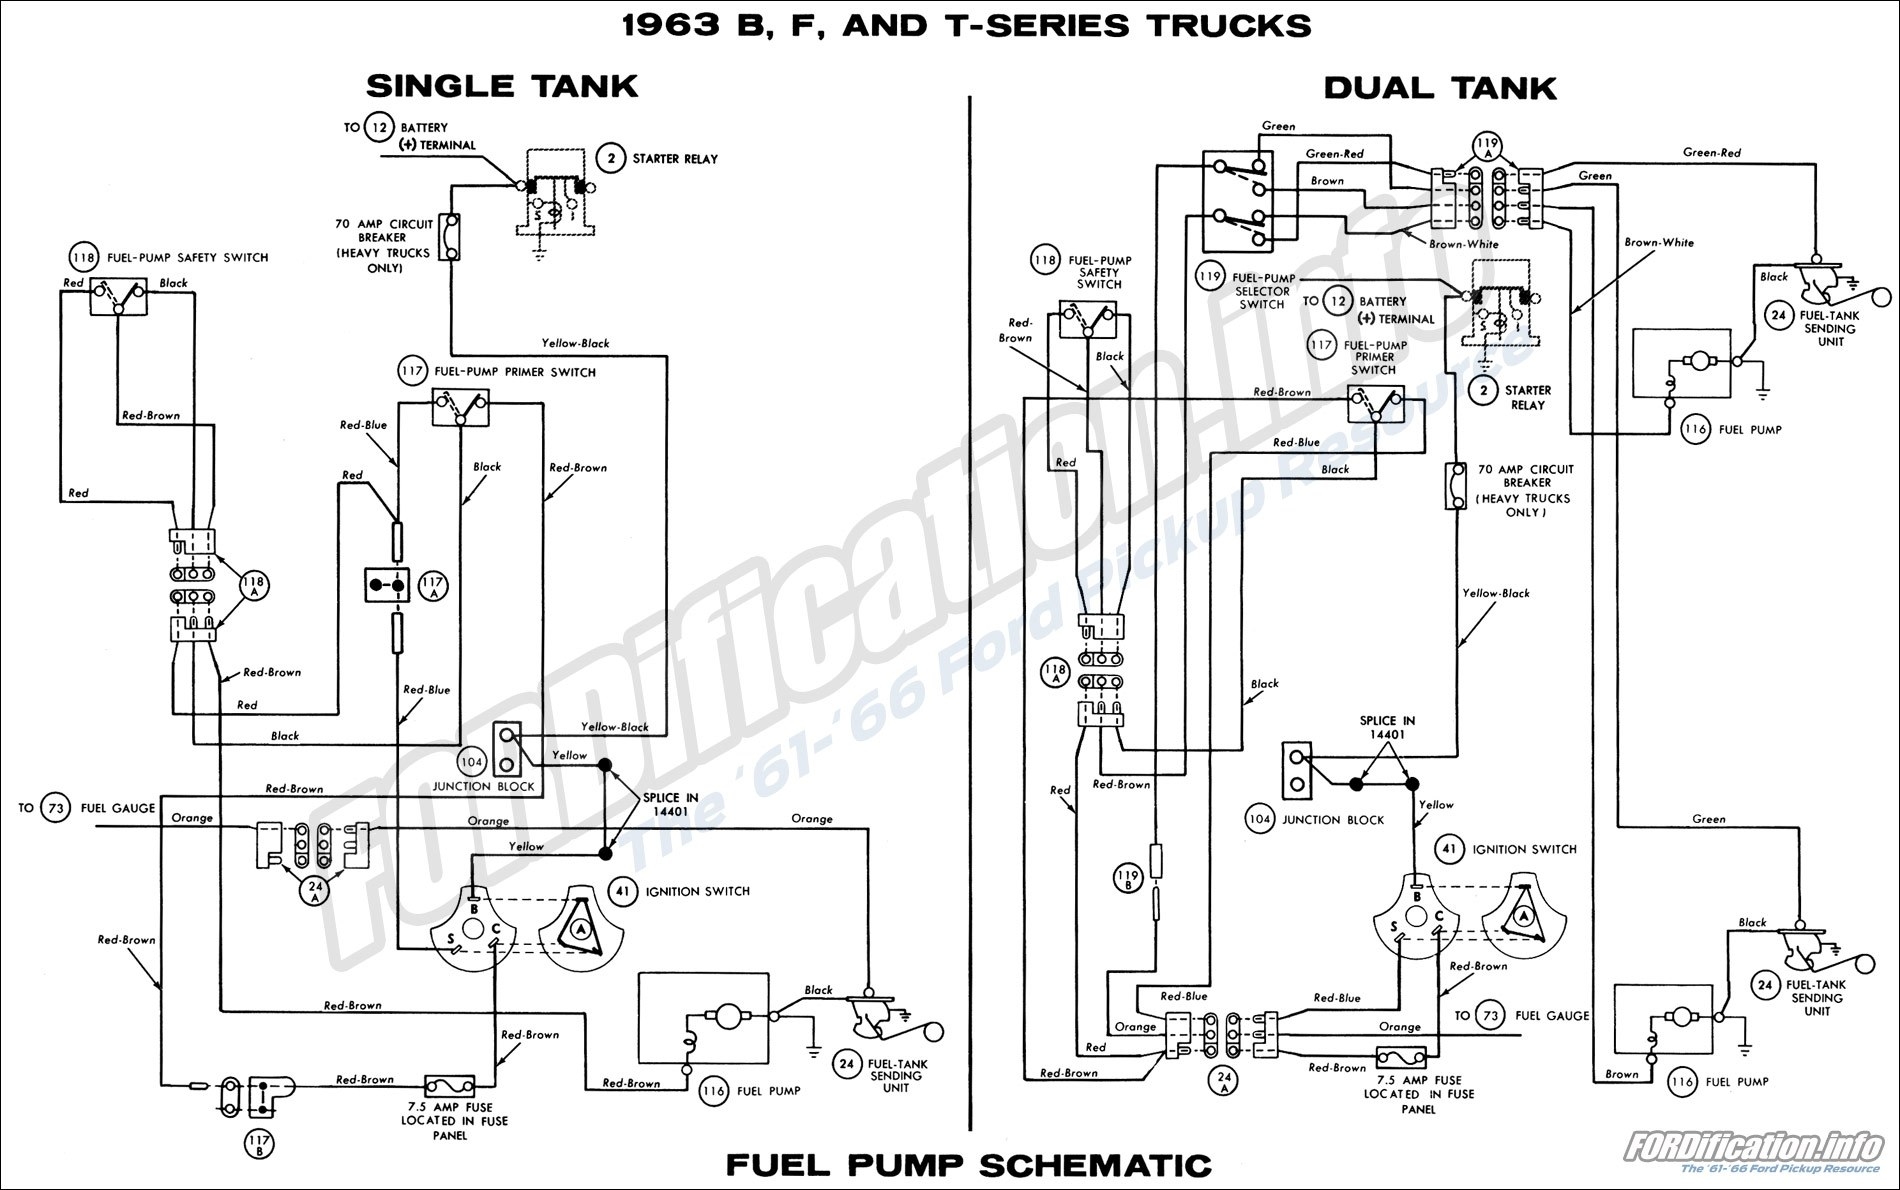 l67 wiring diagram fk 2800  vt365 wiring diagram as well as international tractor  fk 2800  vt365 wiring diagram as well